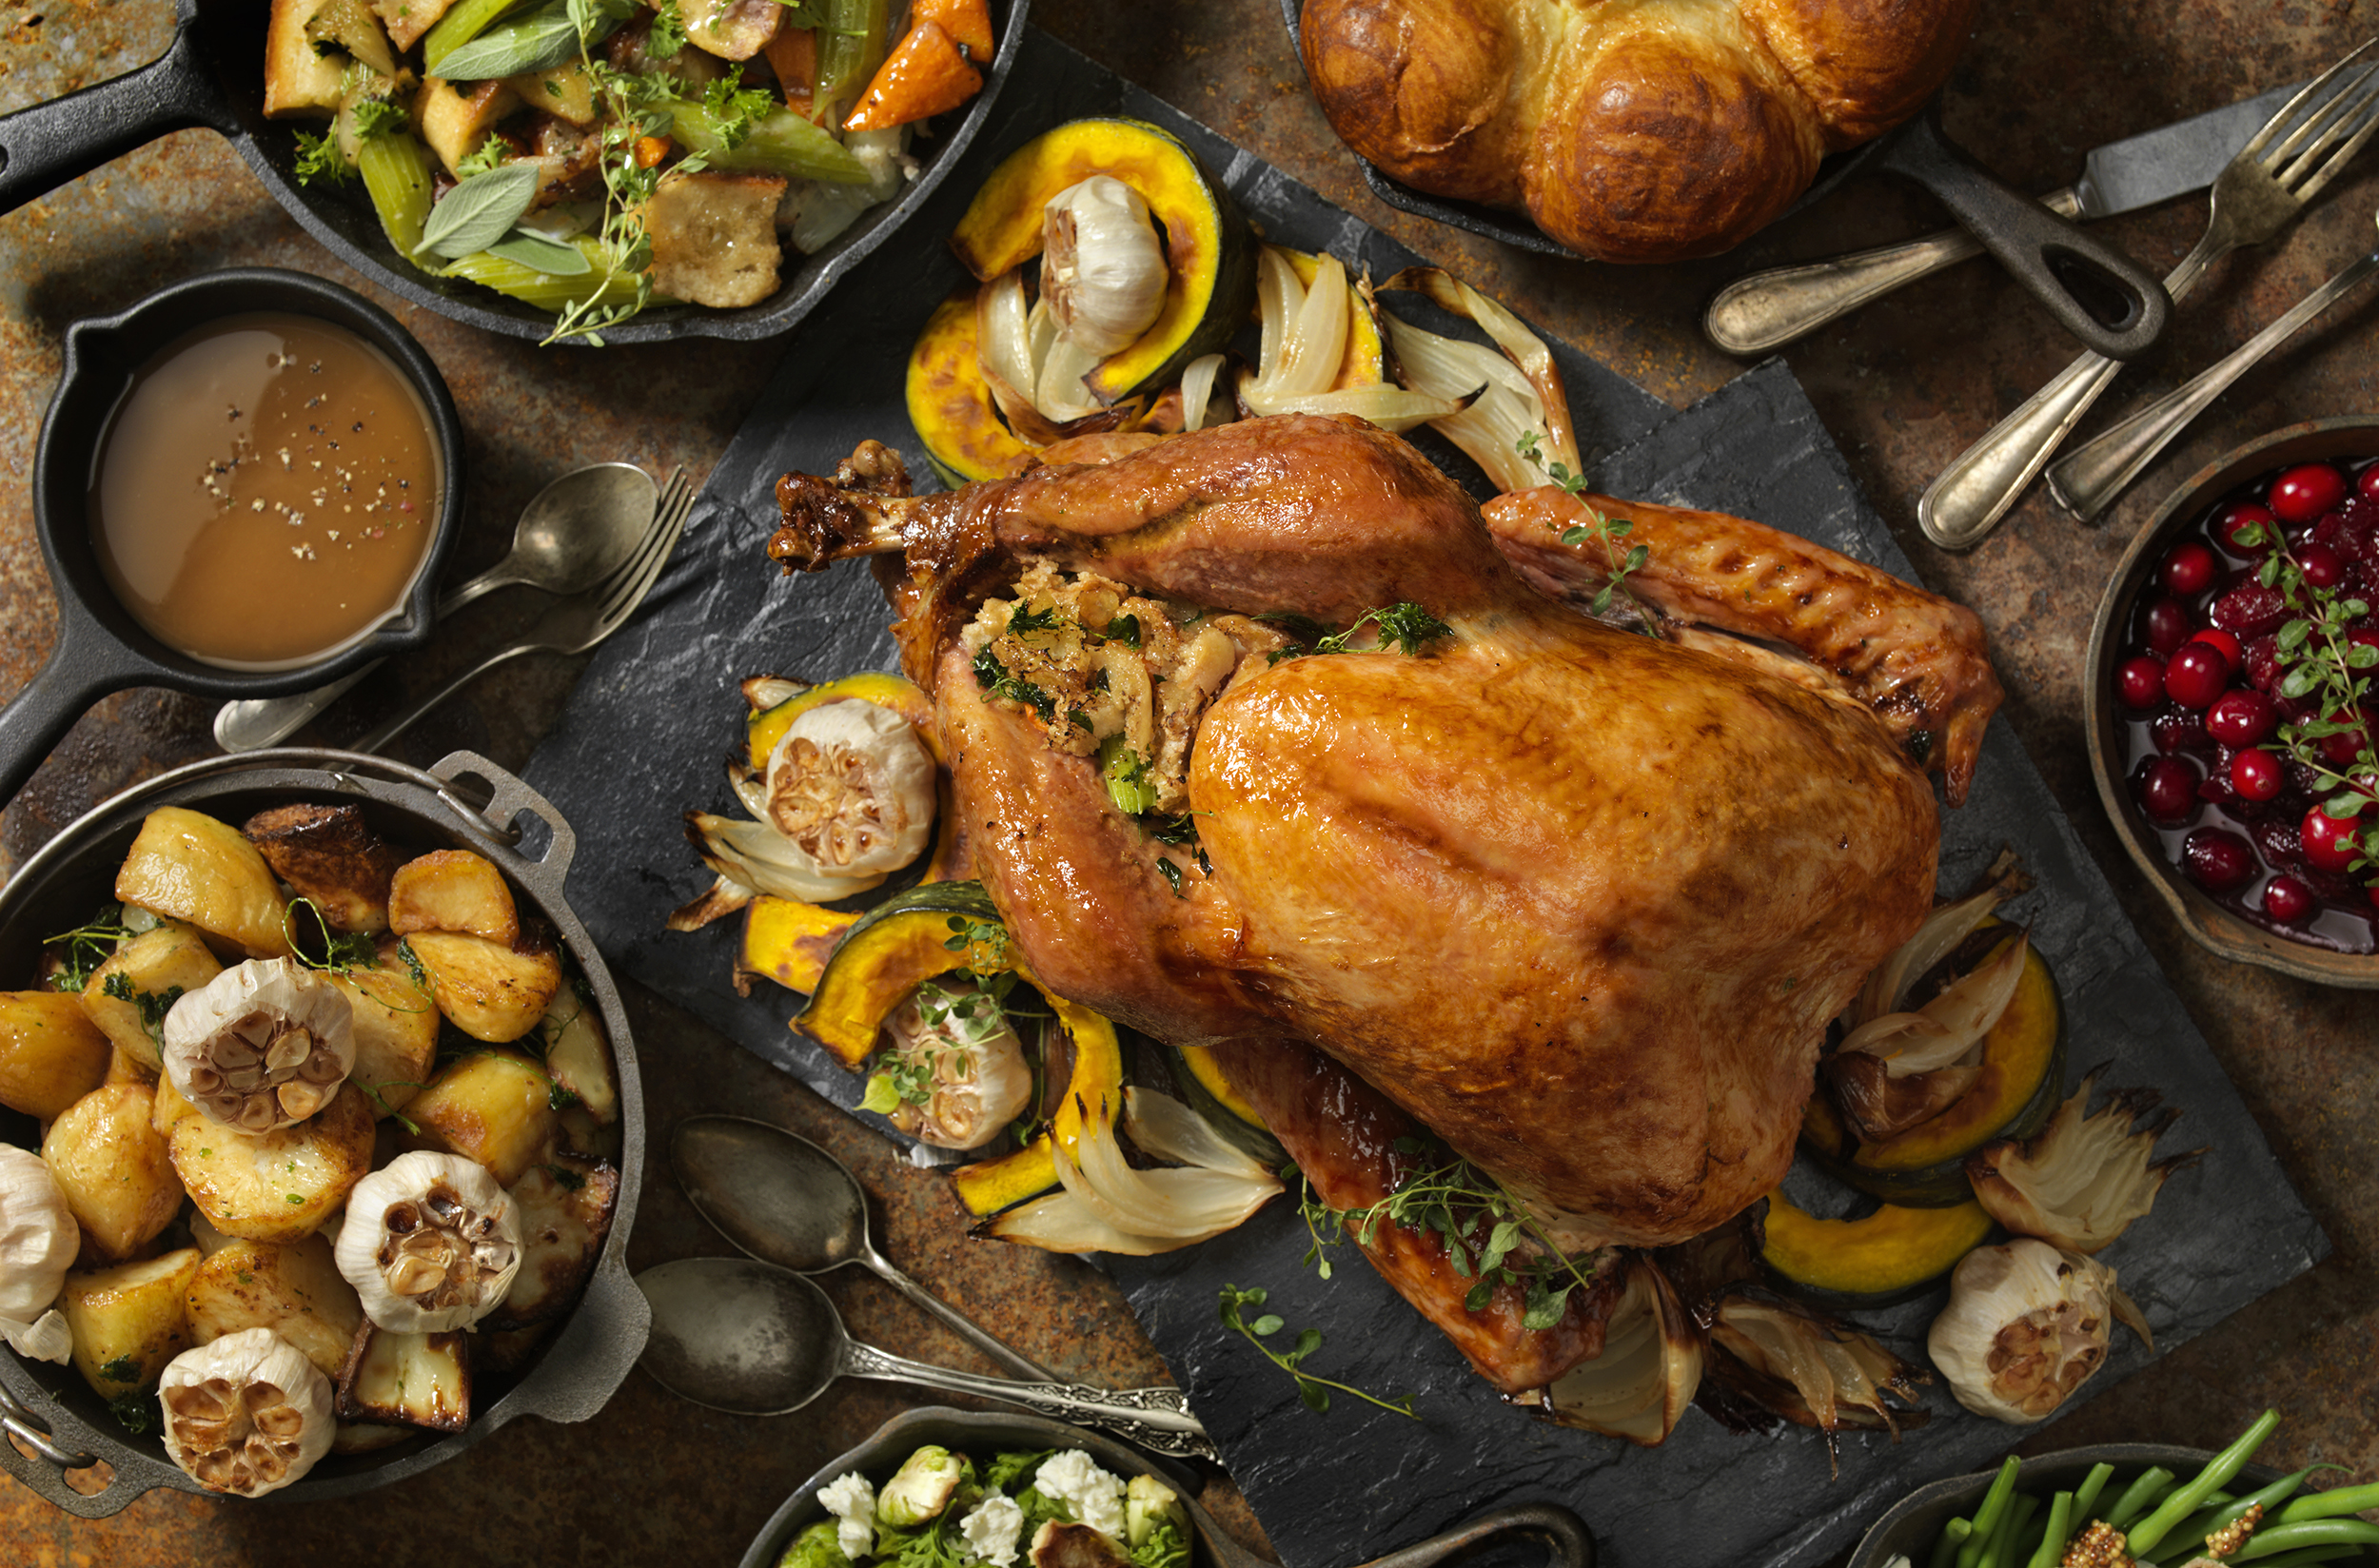 How To Save Time And Money On Thanksgiving Prep According To Martha Stewart And Other Pros